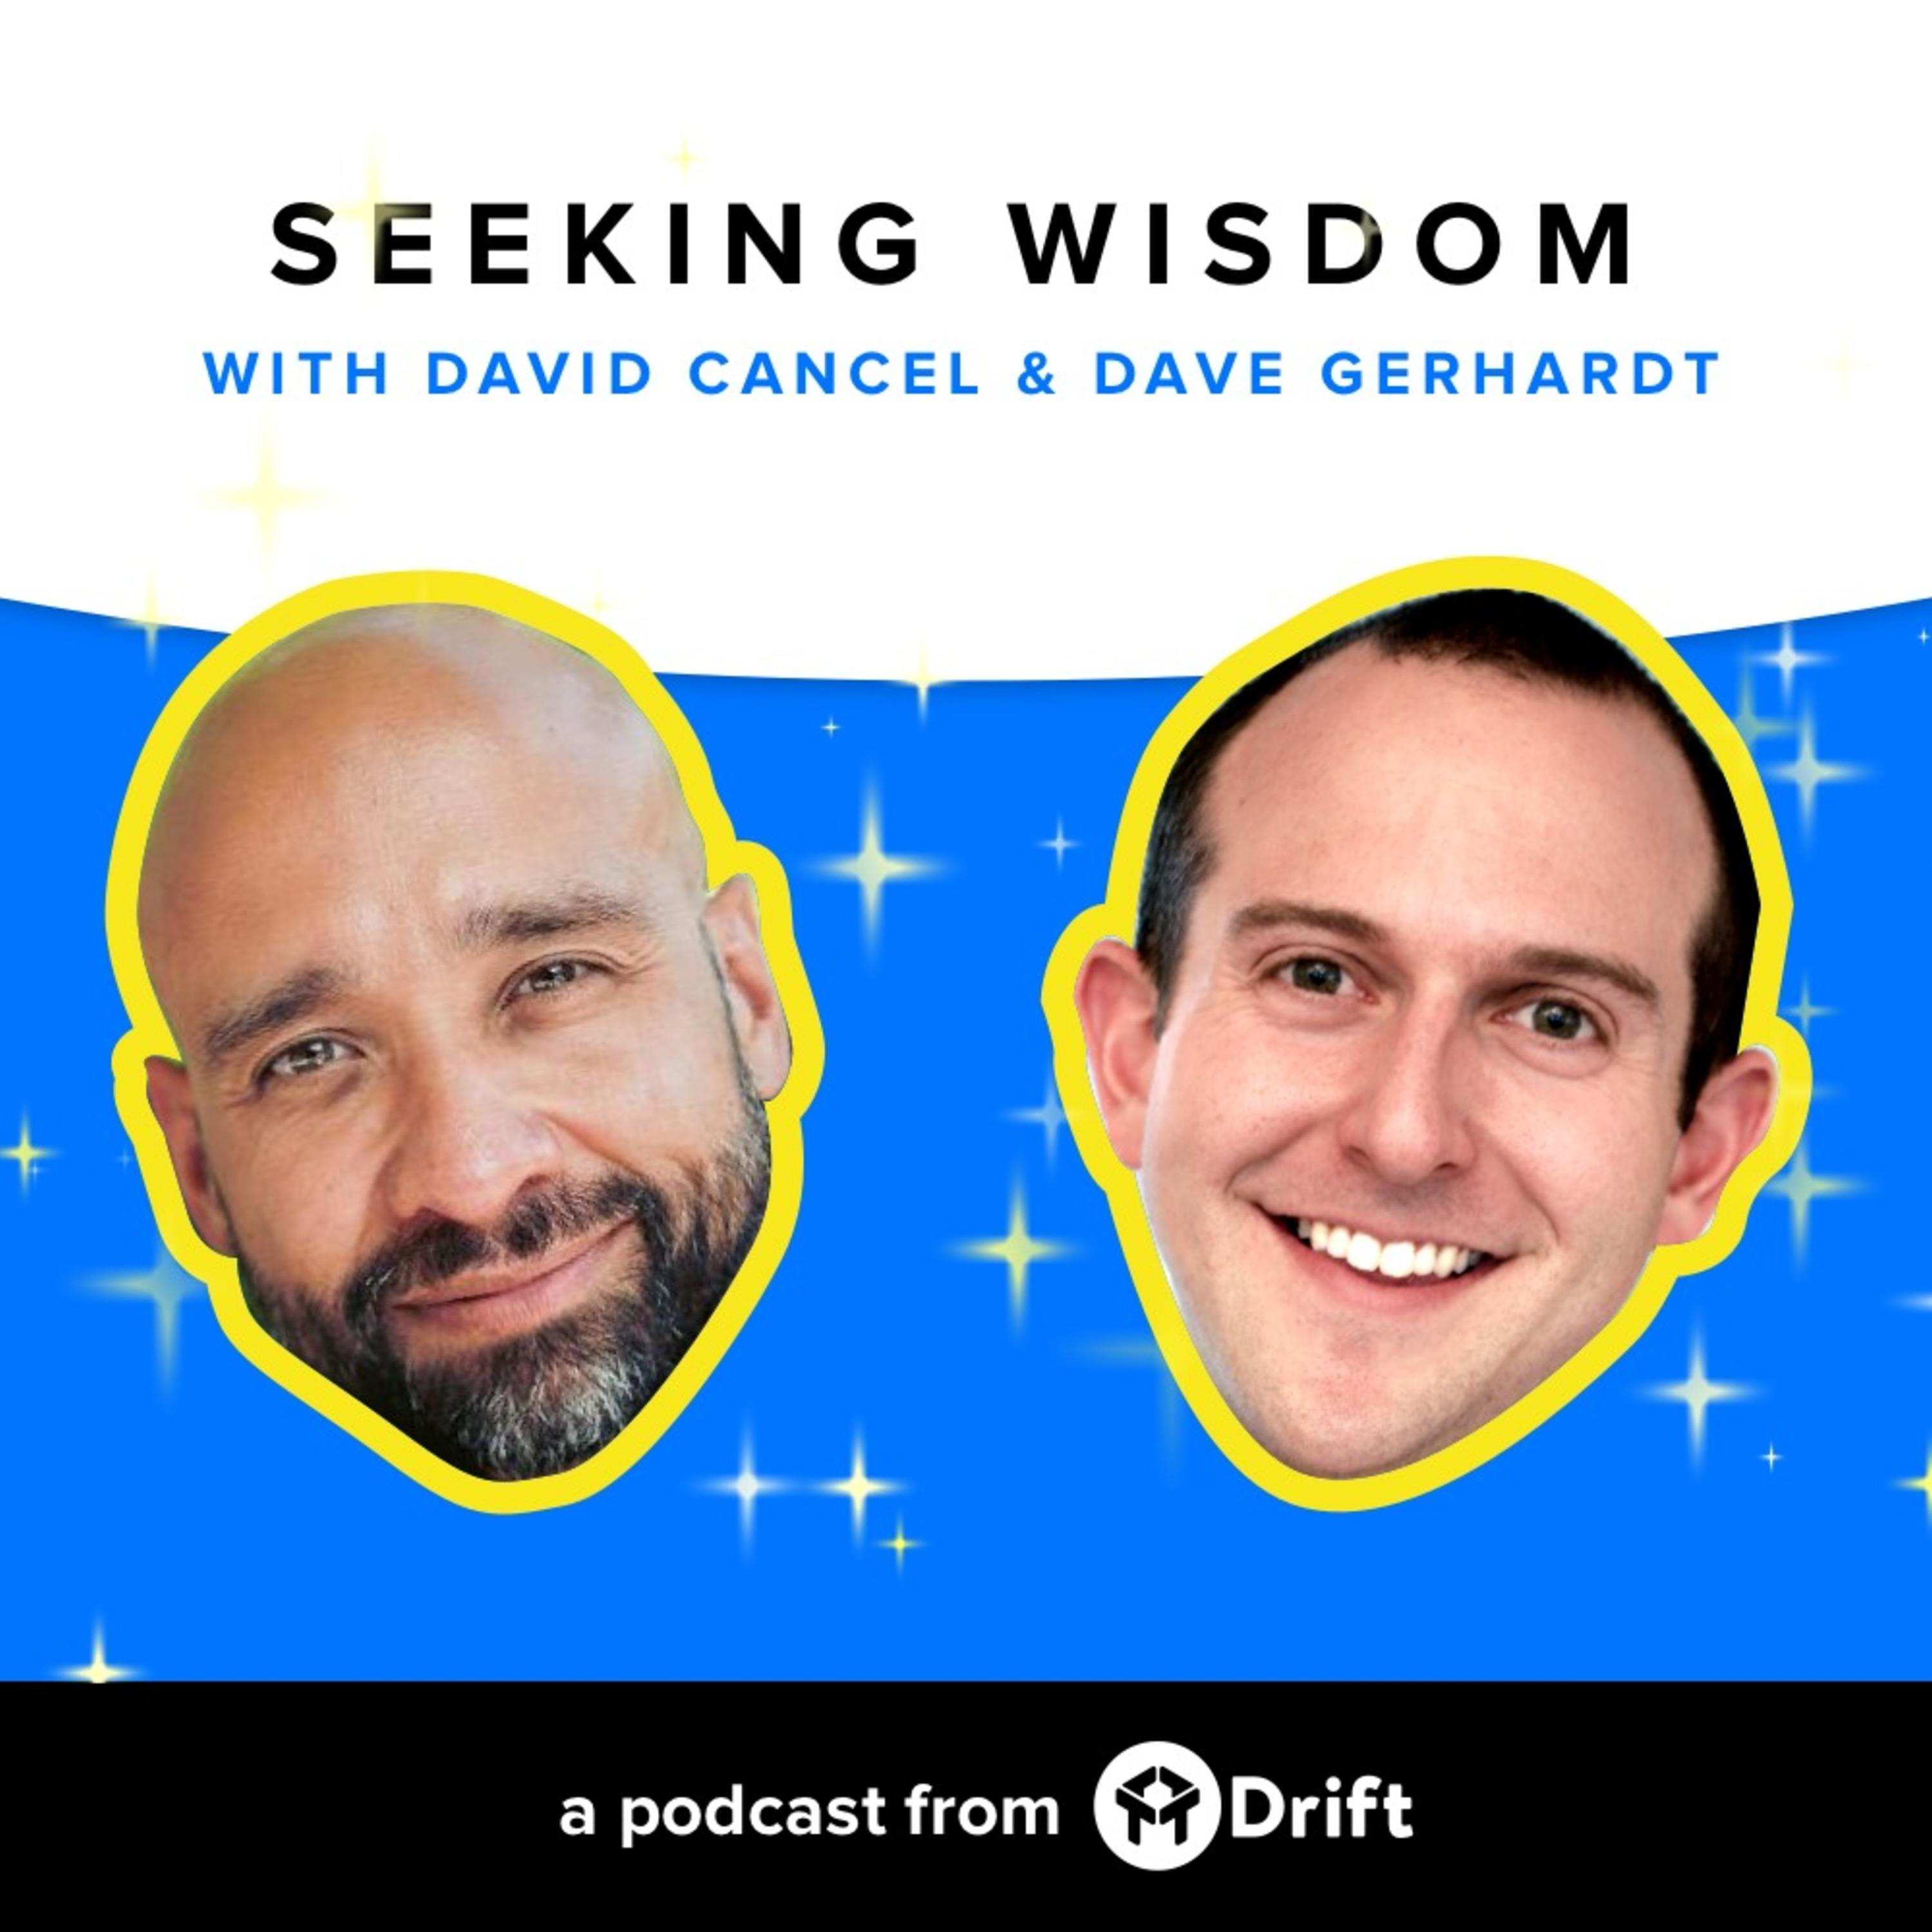 #61: Why We Invested So Much In Our Brand From Day One